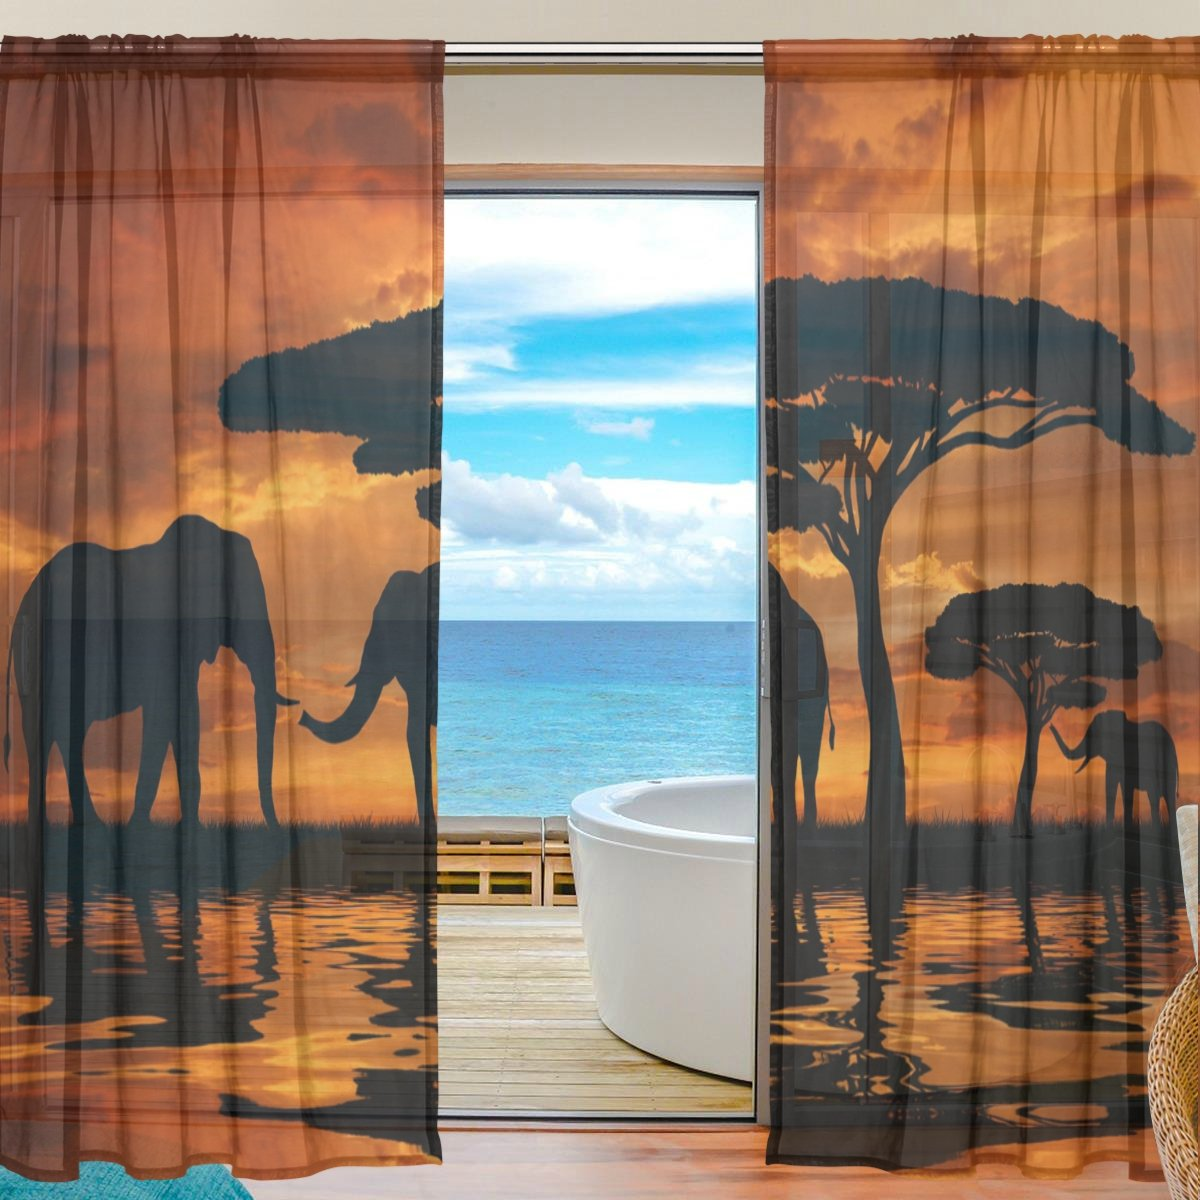 SEULIFE Window Sheer Curtain, African Animal Elephant Tree Sunset Voile Curtain Drapes for Door Kitchen Living Room Bedroom 55x78 inches 2 Panels g3281706p113c127s169